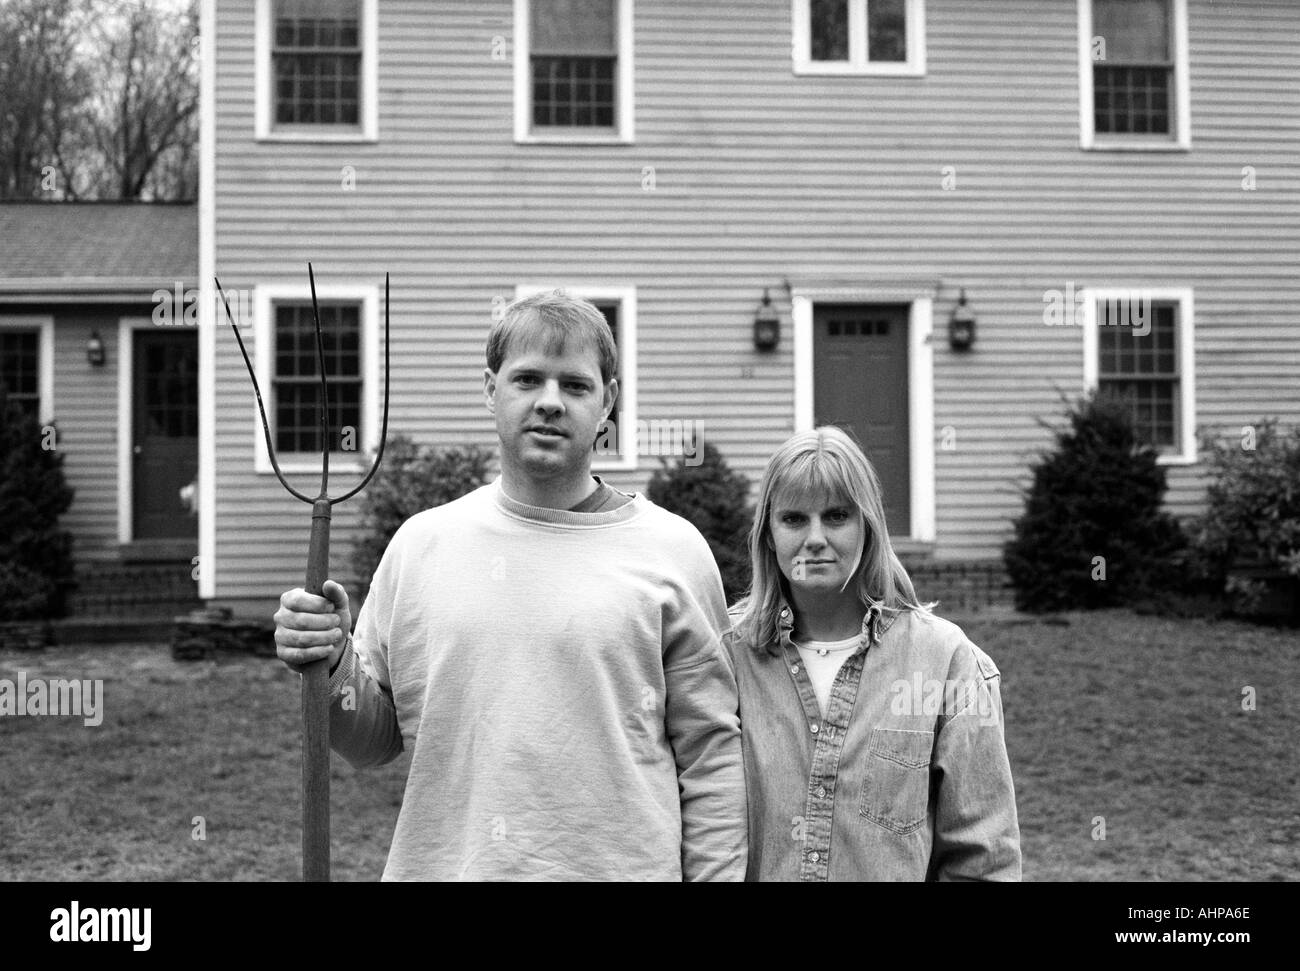 Two people homeowners standing in front of home with pitchfork American Gothic homage Modern version of painting by Grant Wood - Stock Image